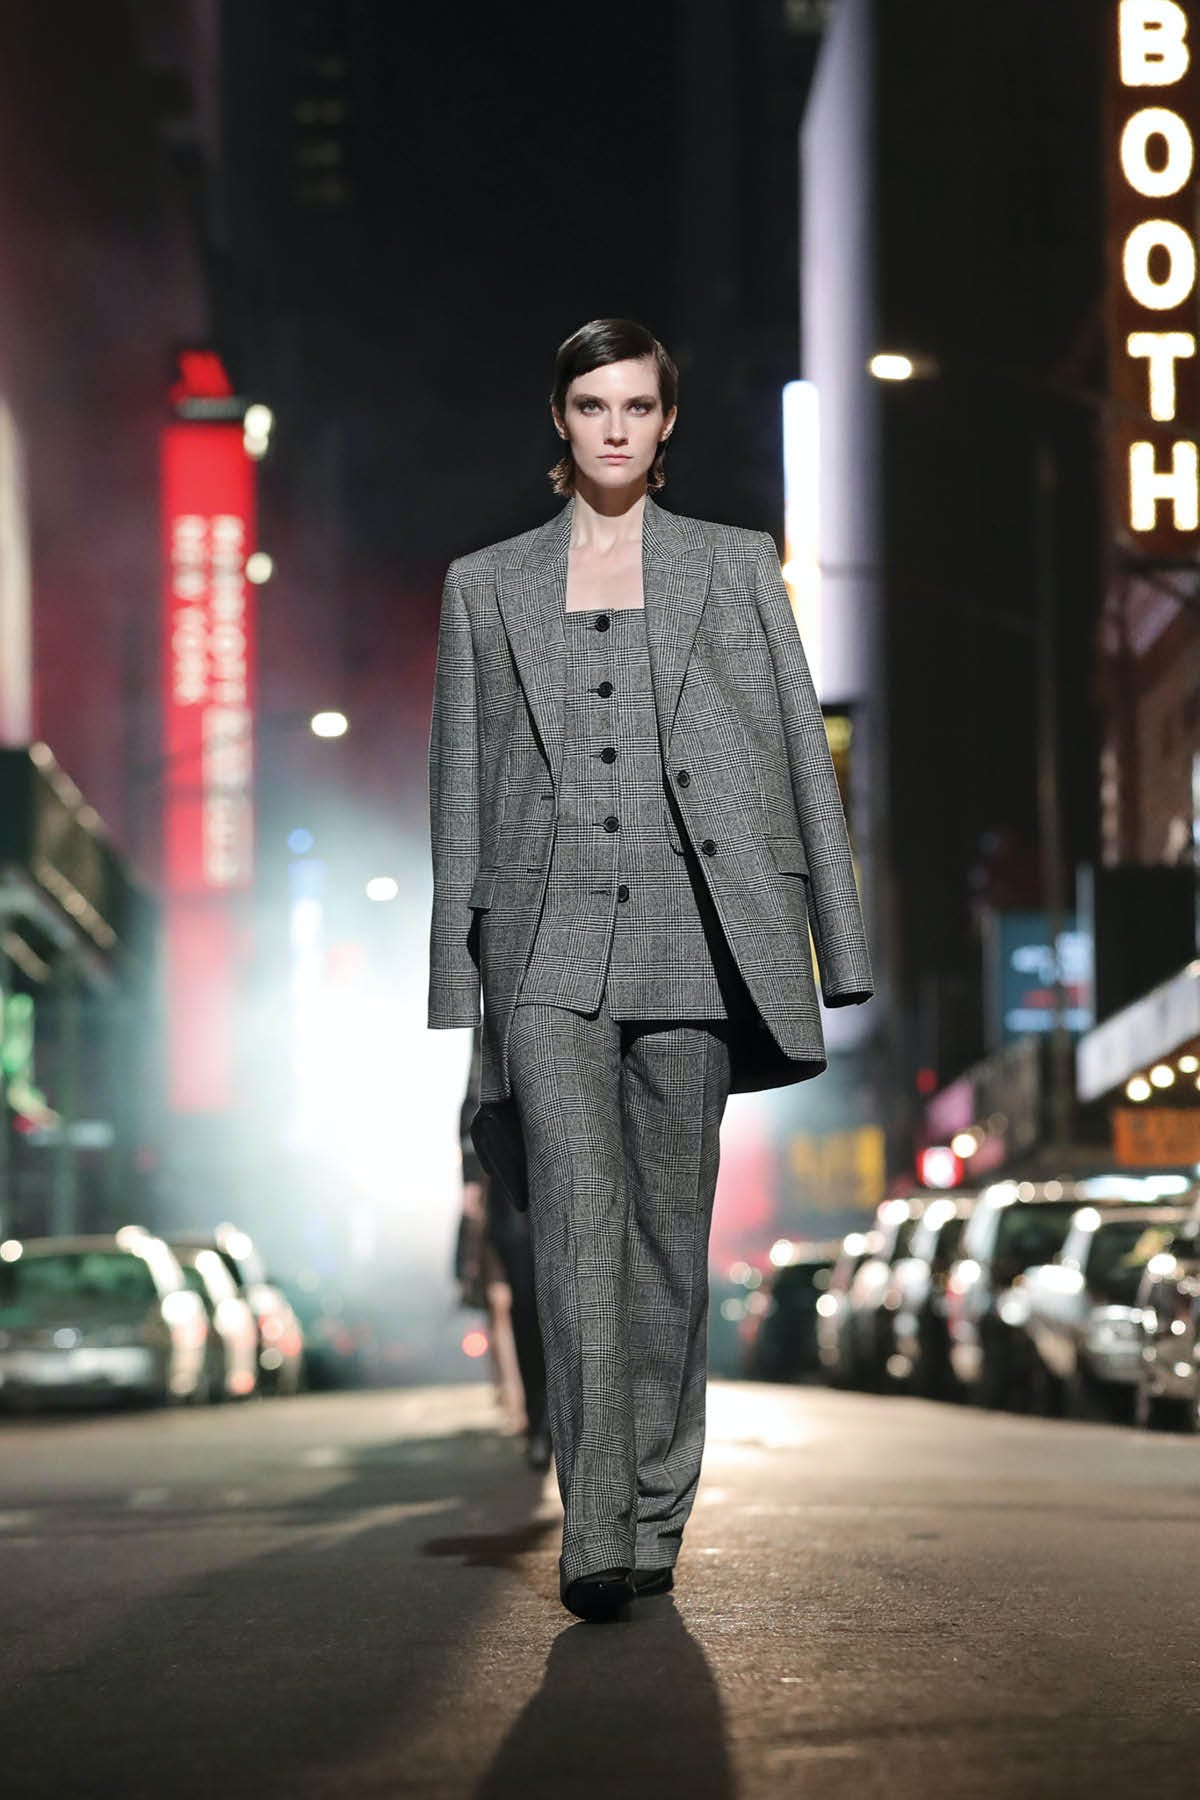 GLEN PLAID SUIT WITH STRAPLESS JACKET